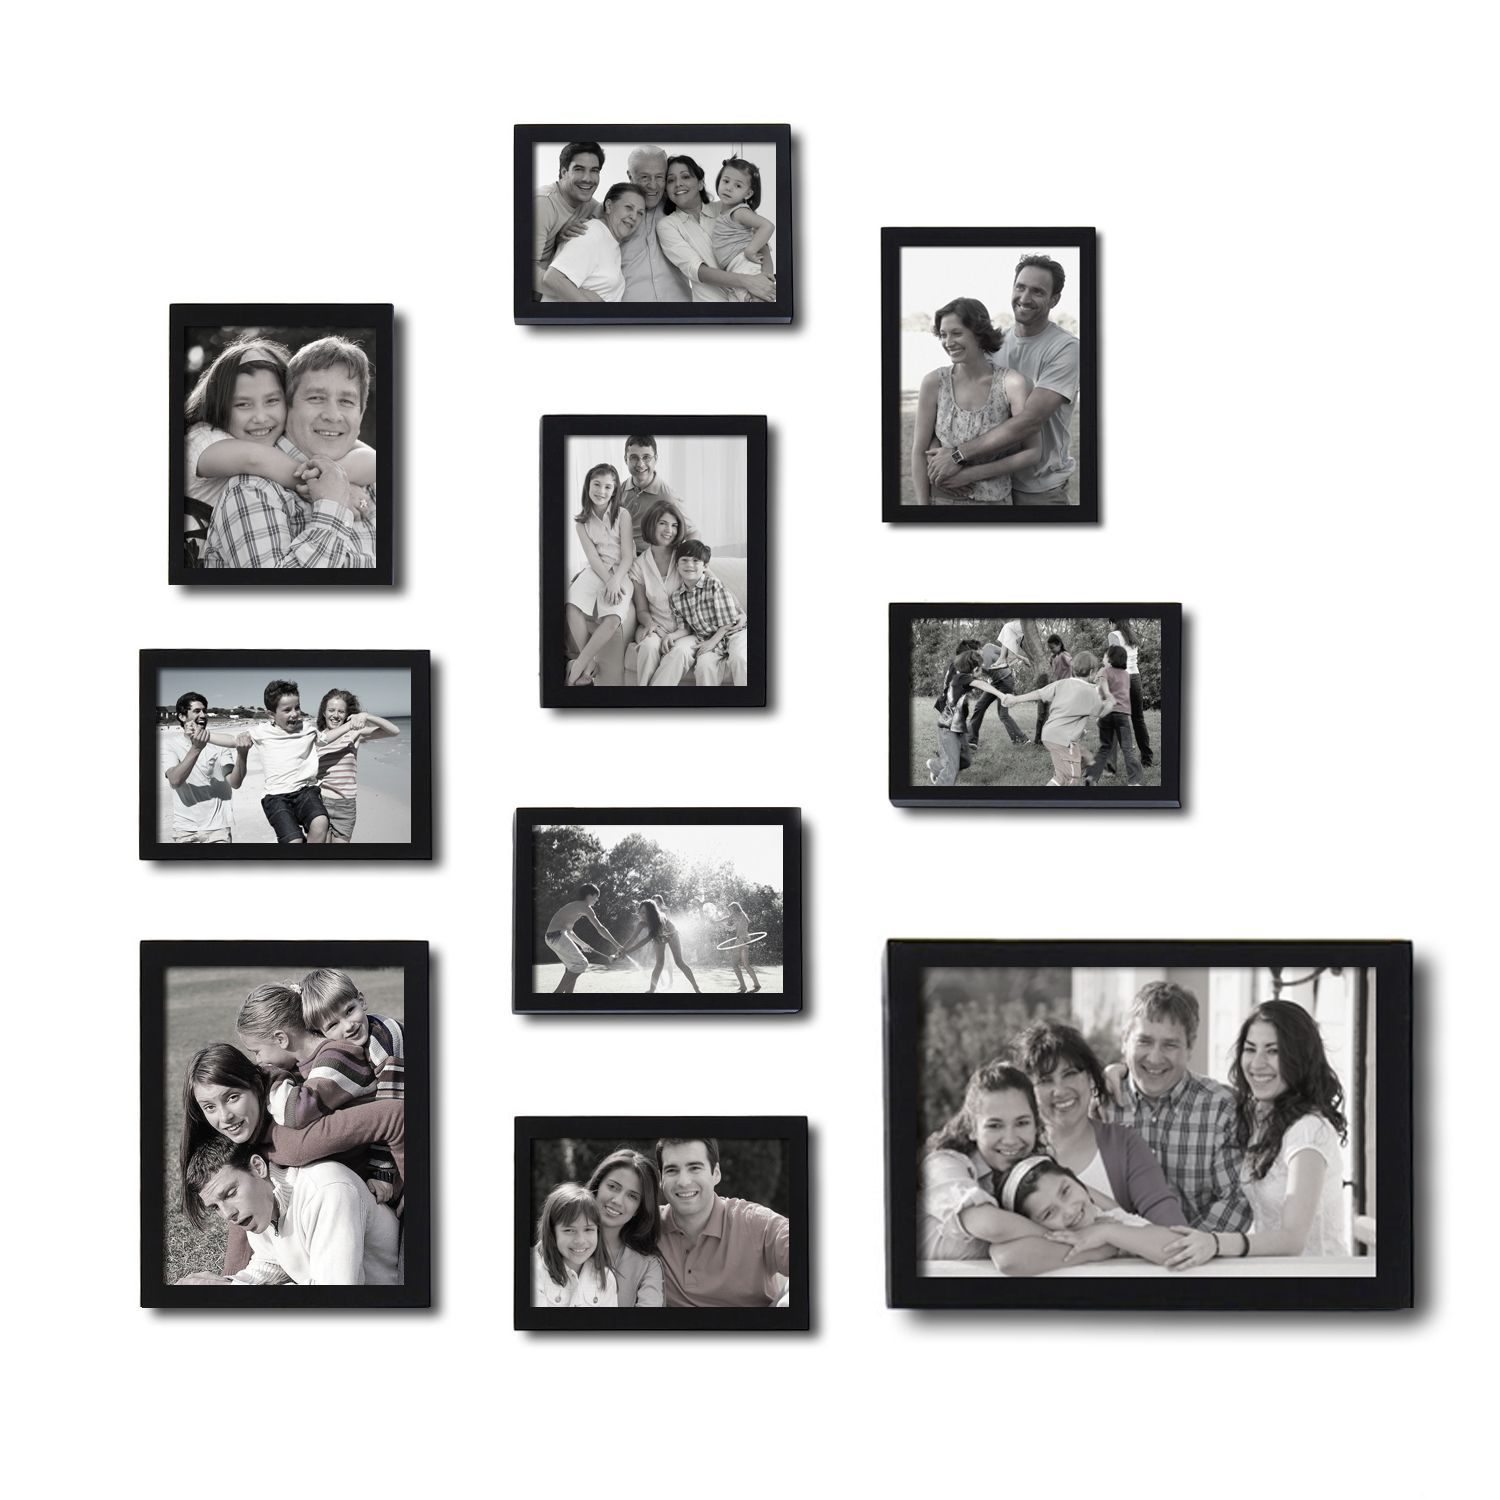 Adeco Decorative Black Wood 10 Piece Photo Frame Set For 8 4 X 6 Inch 1 6 X 8 Inch And 1 8 X 12 Inch Pictures Collage Picture Frames Picture Gallery Wall Picture Frames